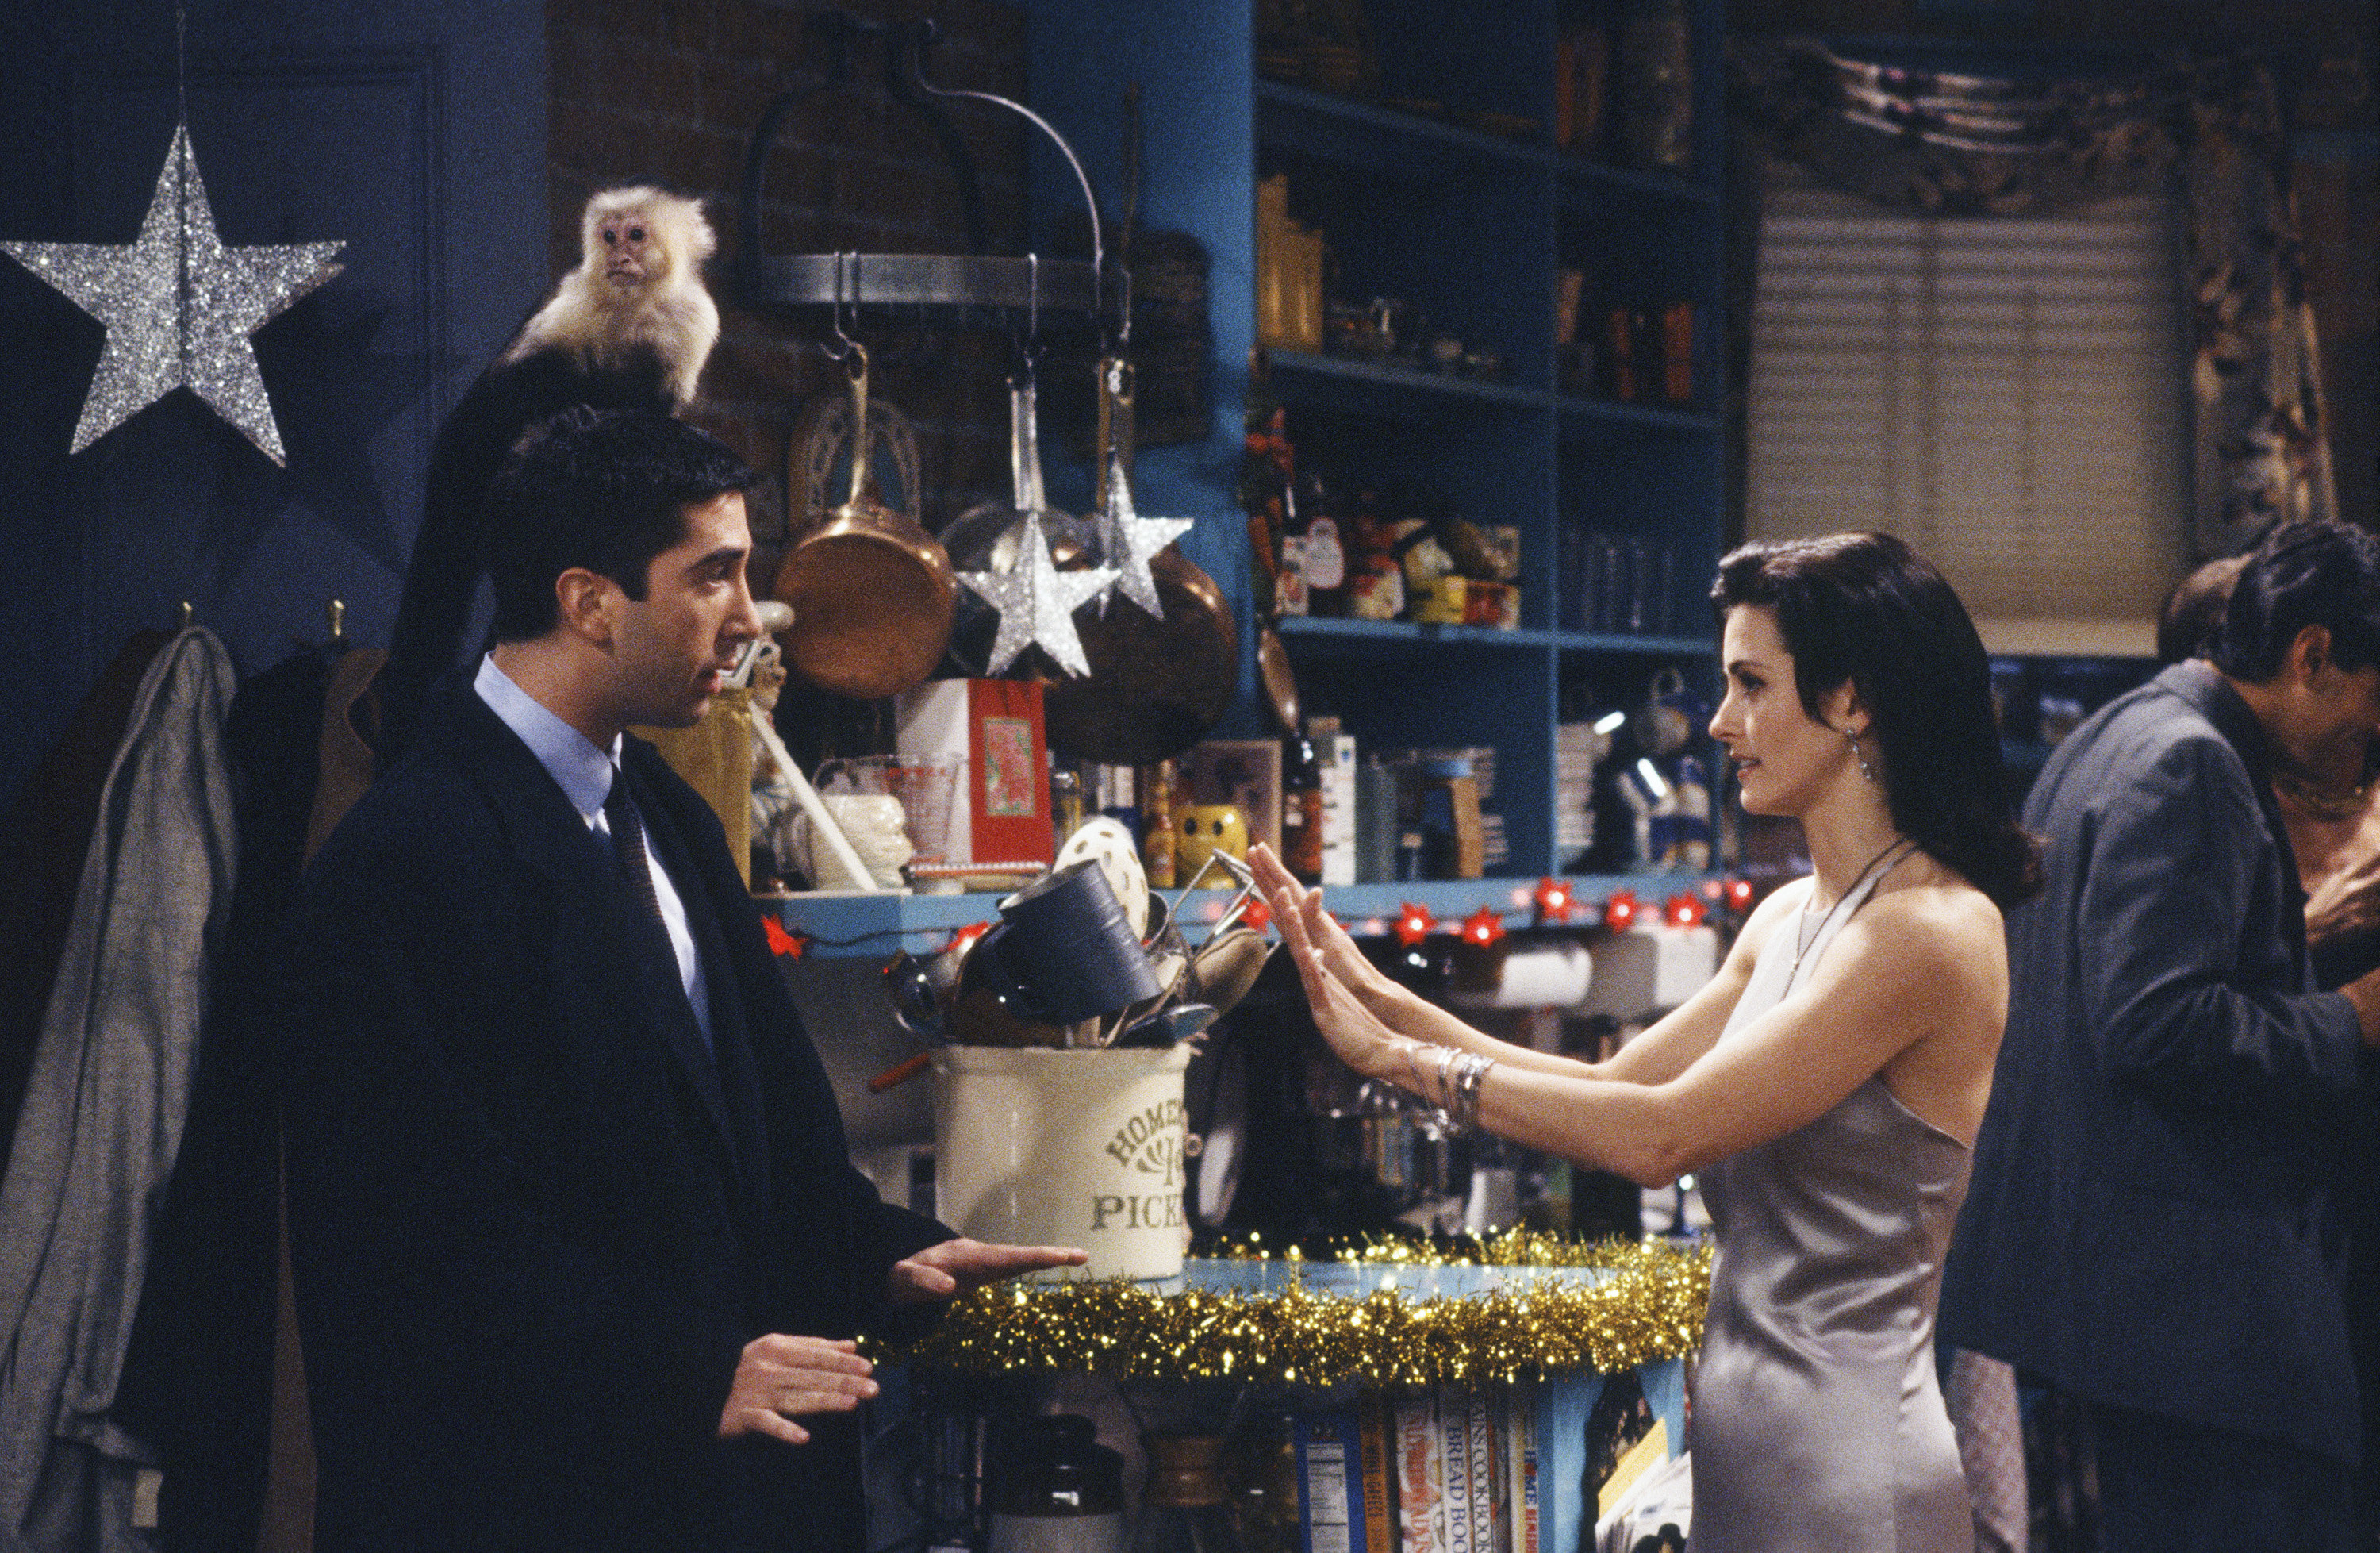 Monica puts her hands up as Ross approaches with the monkey